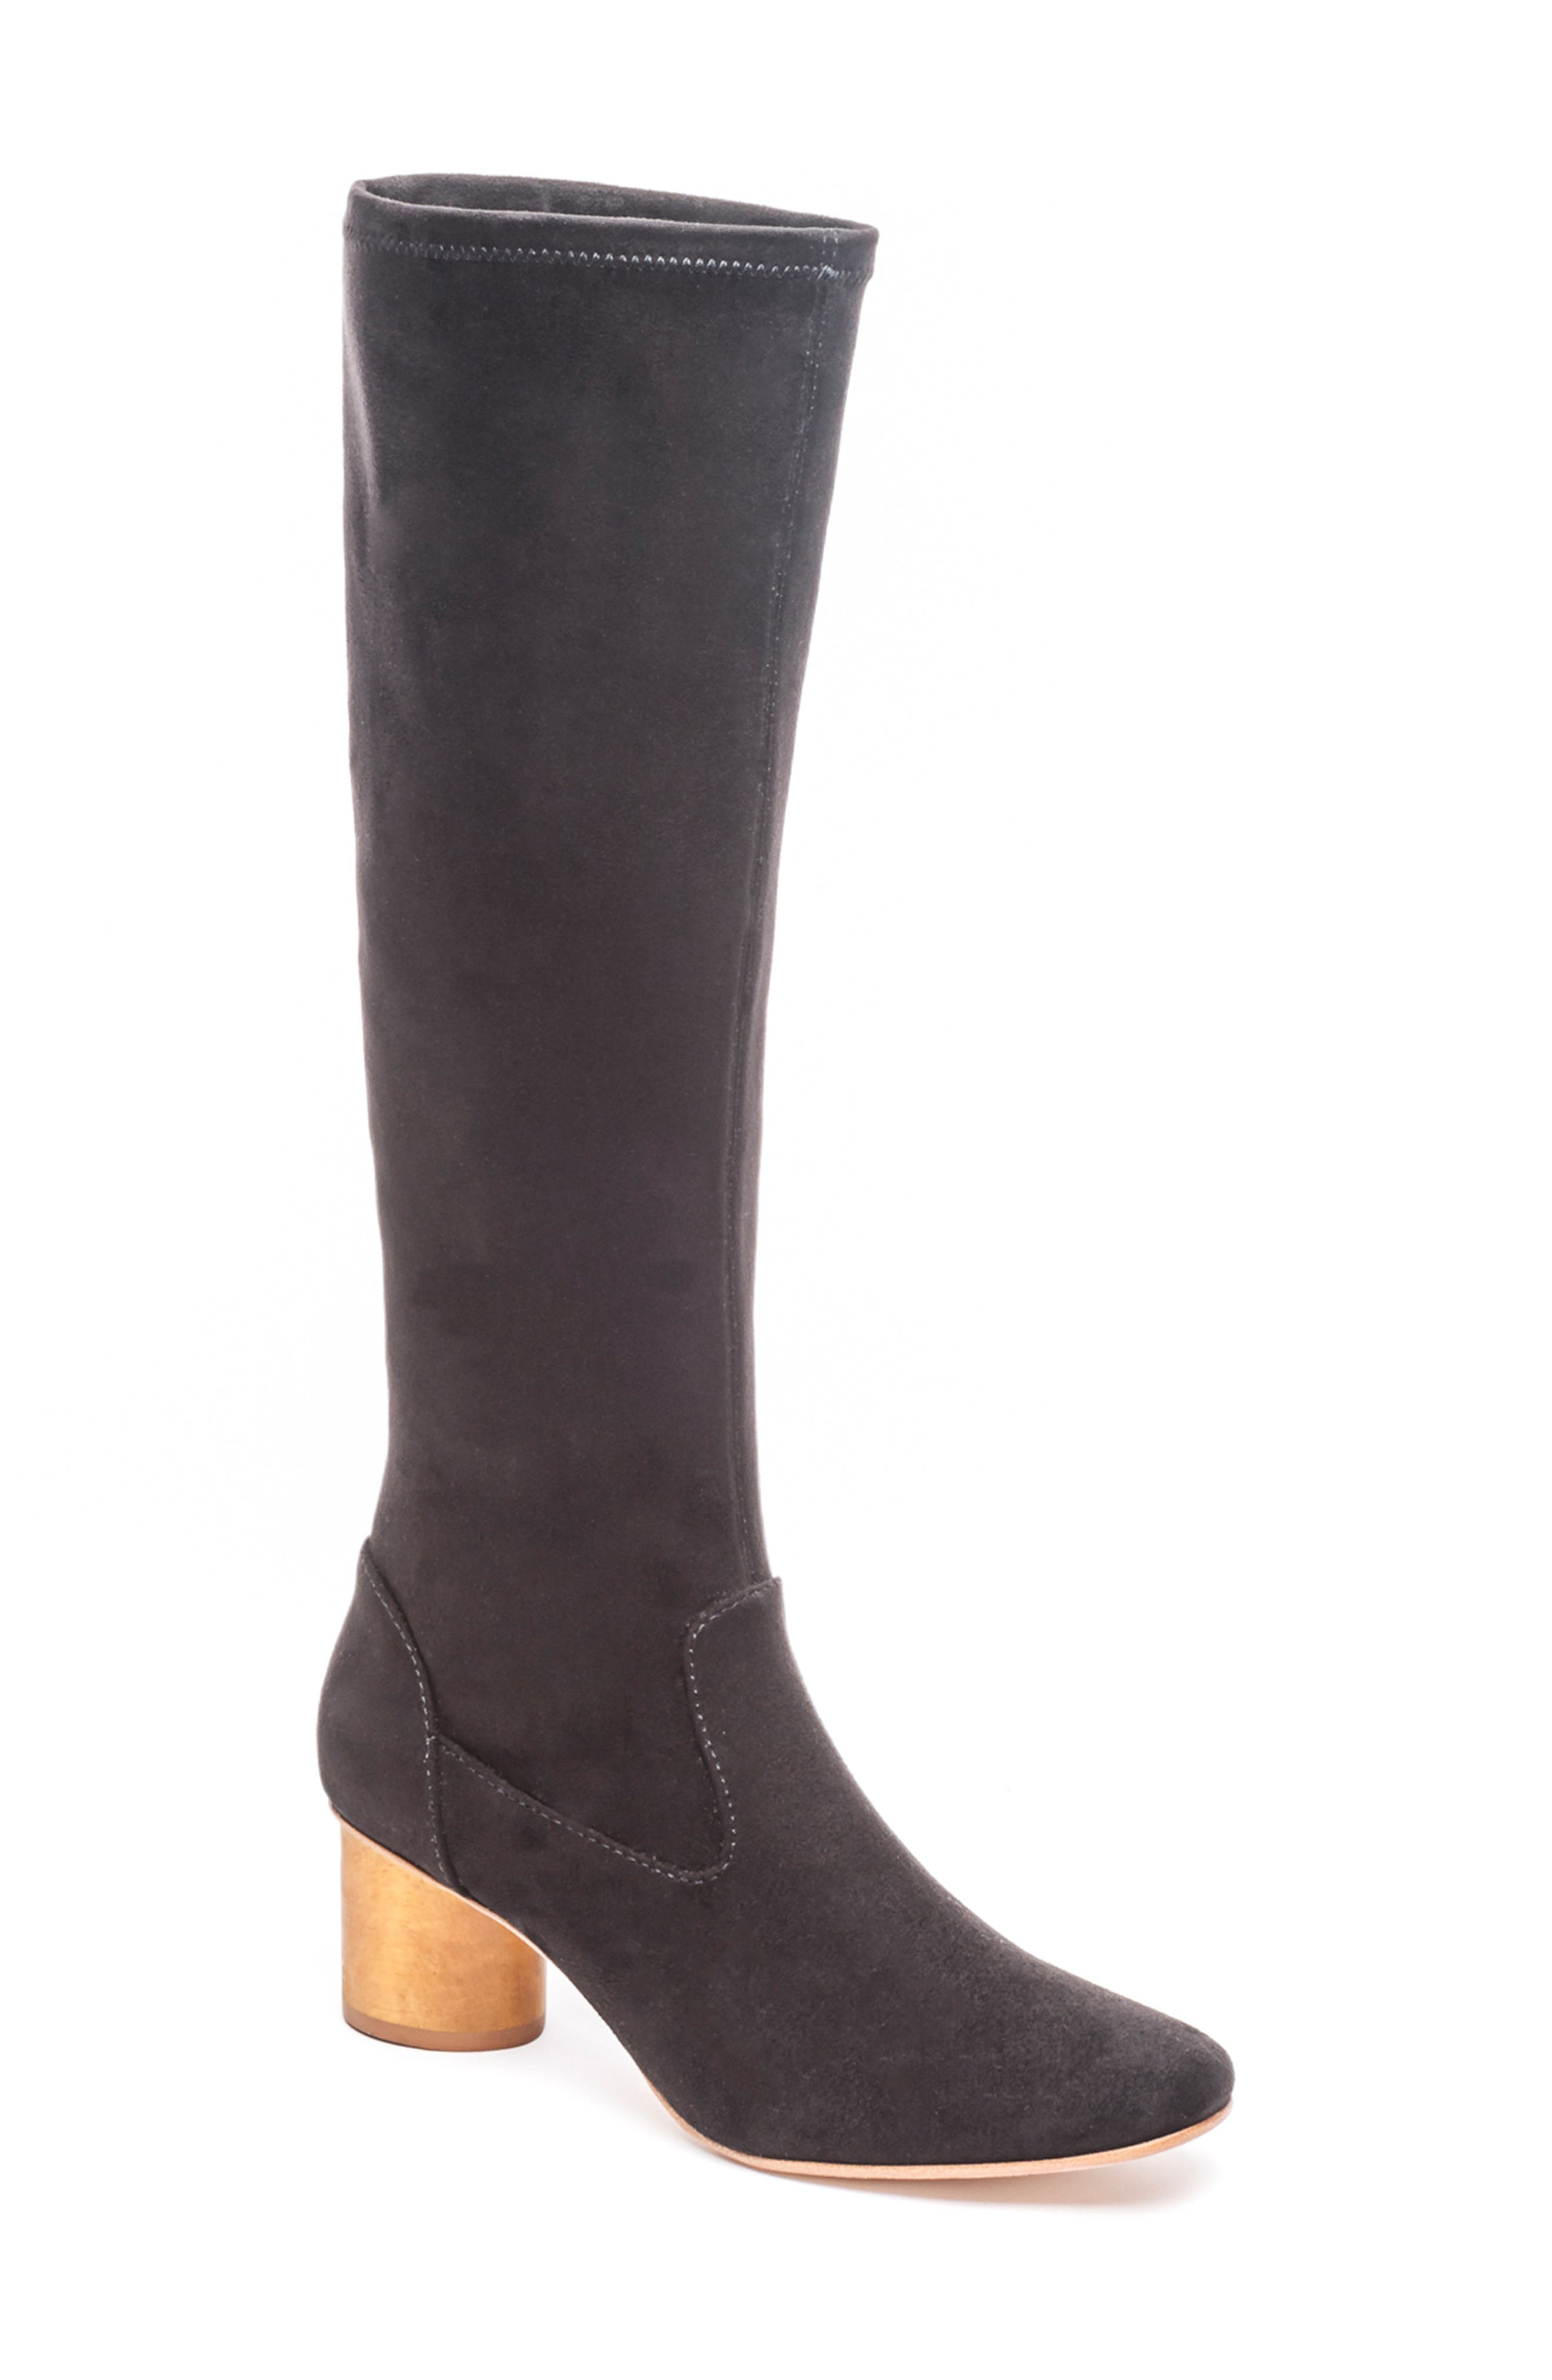 A contrast rounded heel grounds a sleek knee-high boot in soft, supple suede. Style Name: Bernardo Knee High Boot (Women) (Narrow Calf). Style Number: 5637485. Available in stores.